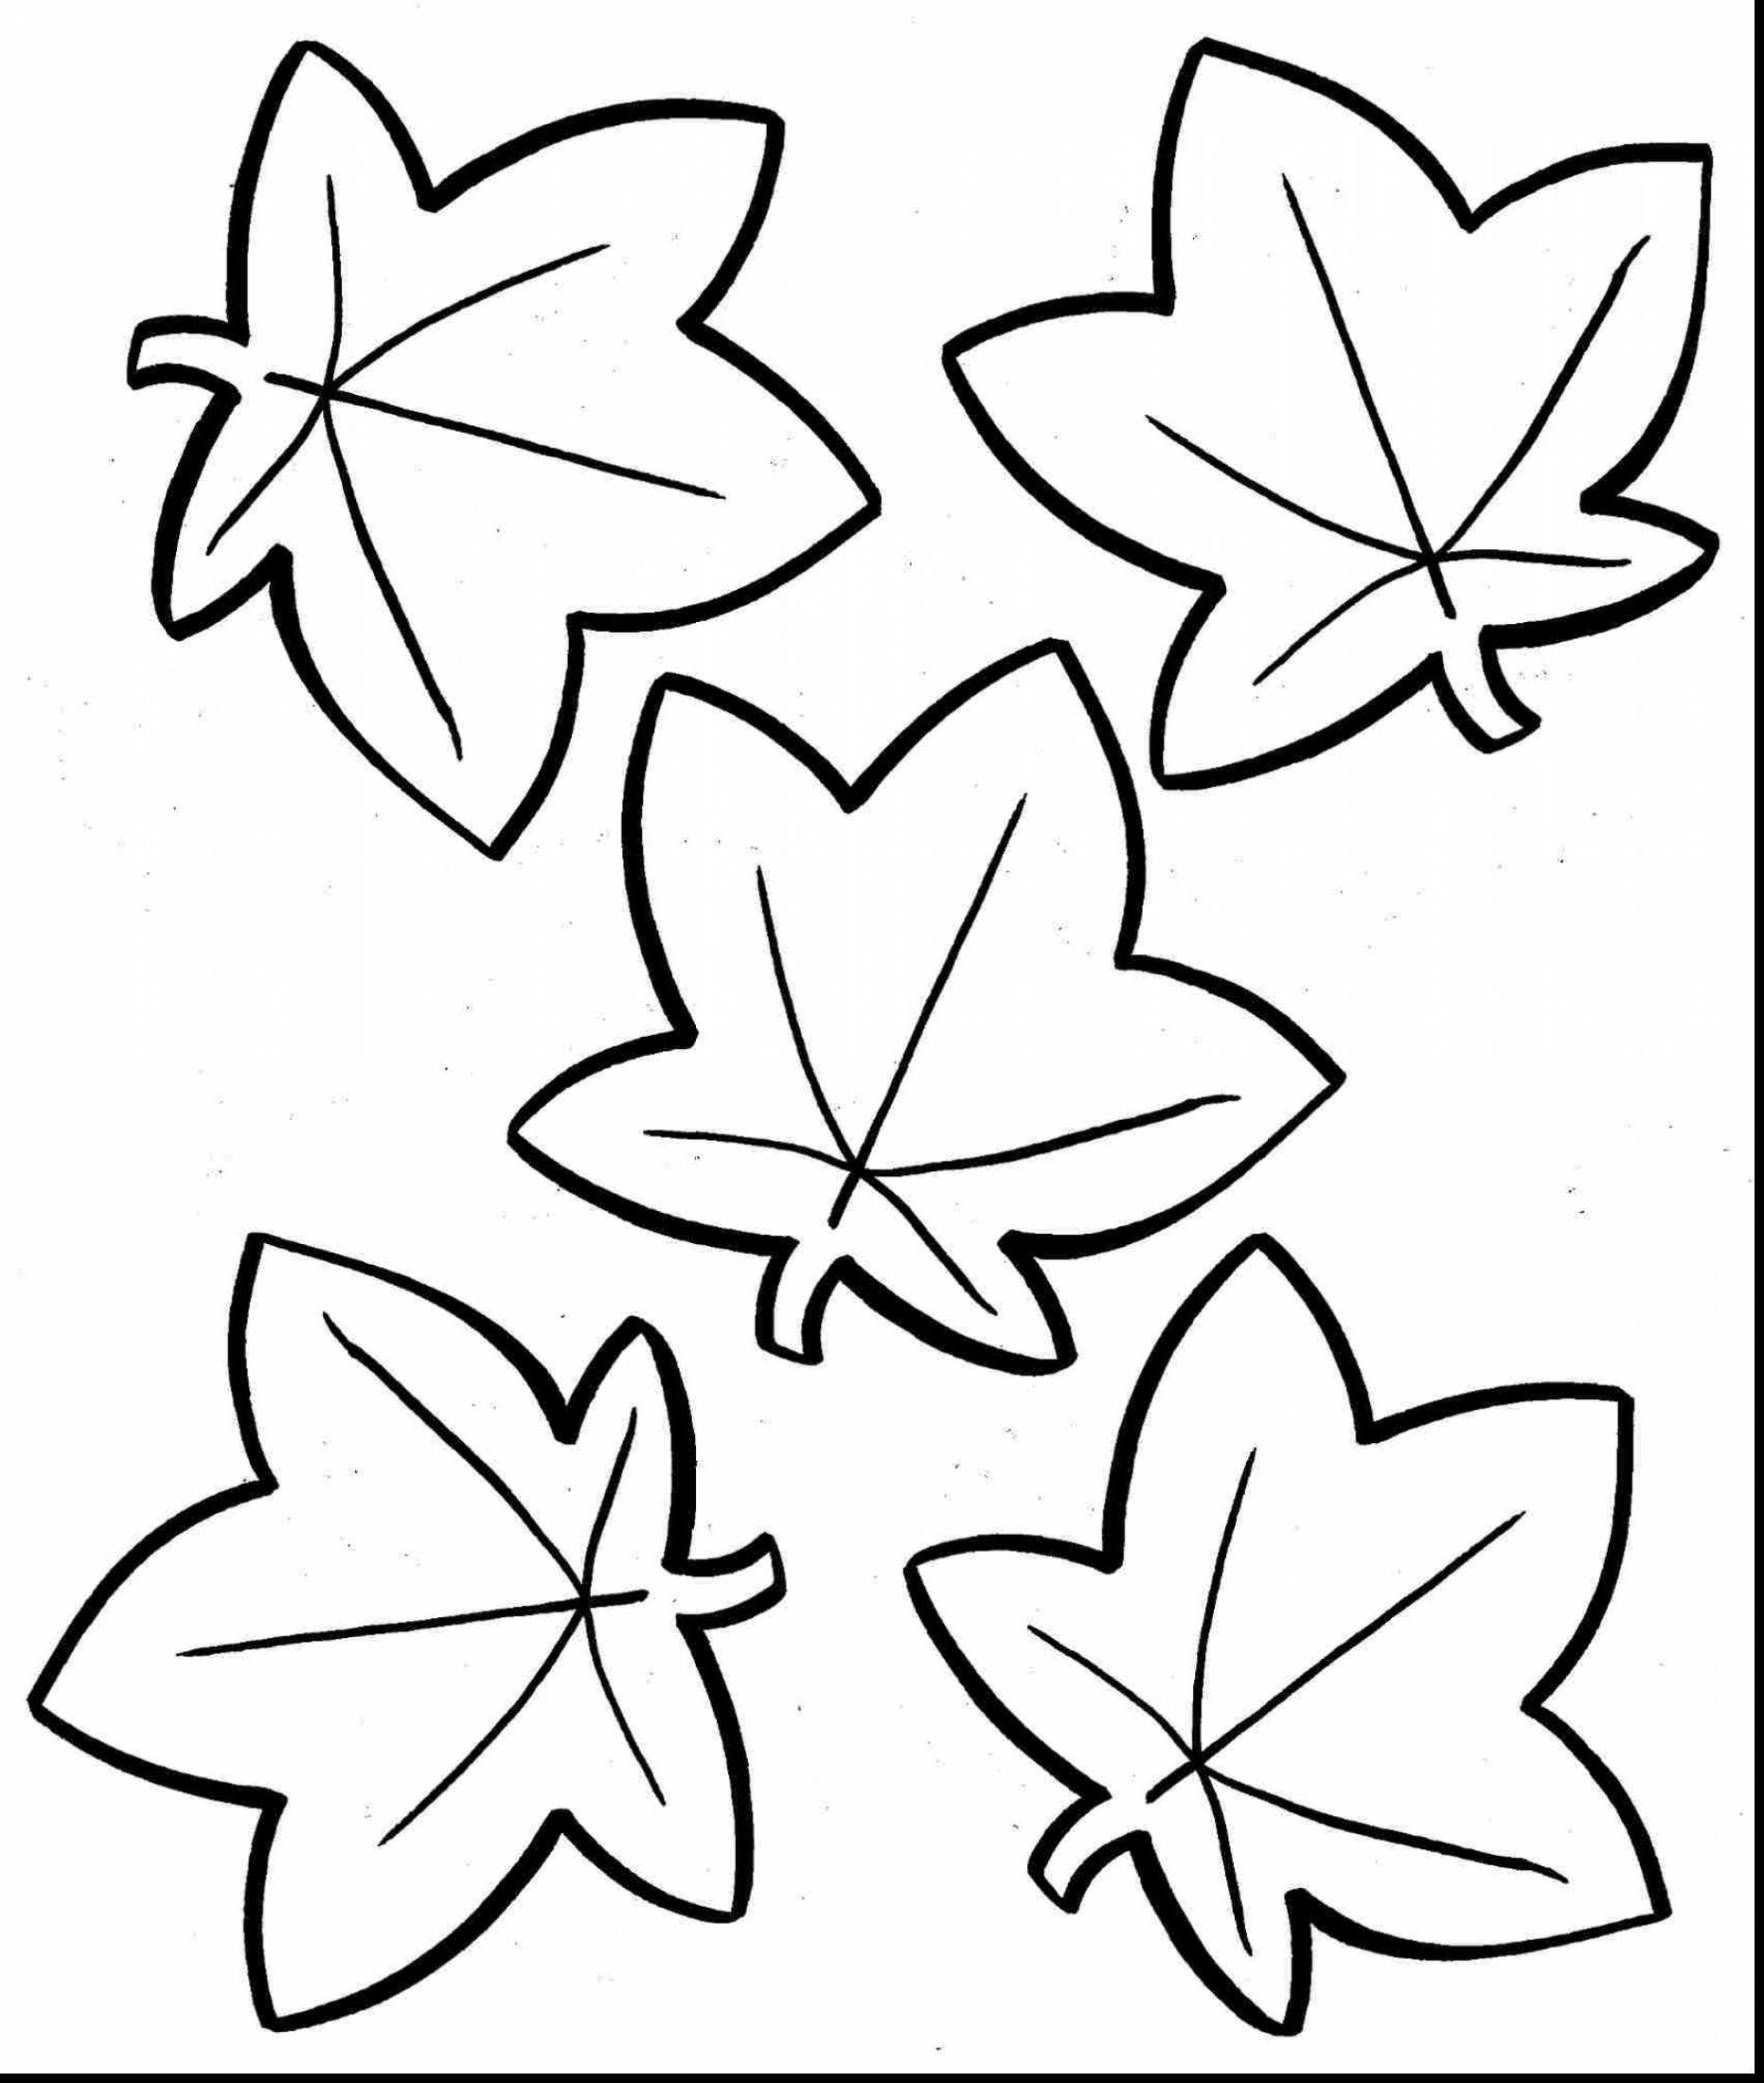 pumpkin leaves coloring pages coloring page with pumpkin leaves stock illustration coloring pages pumpkin leaves